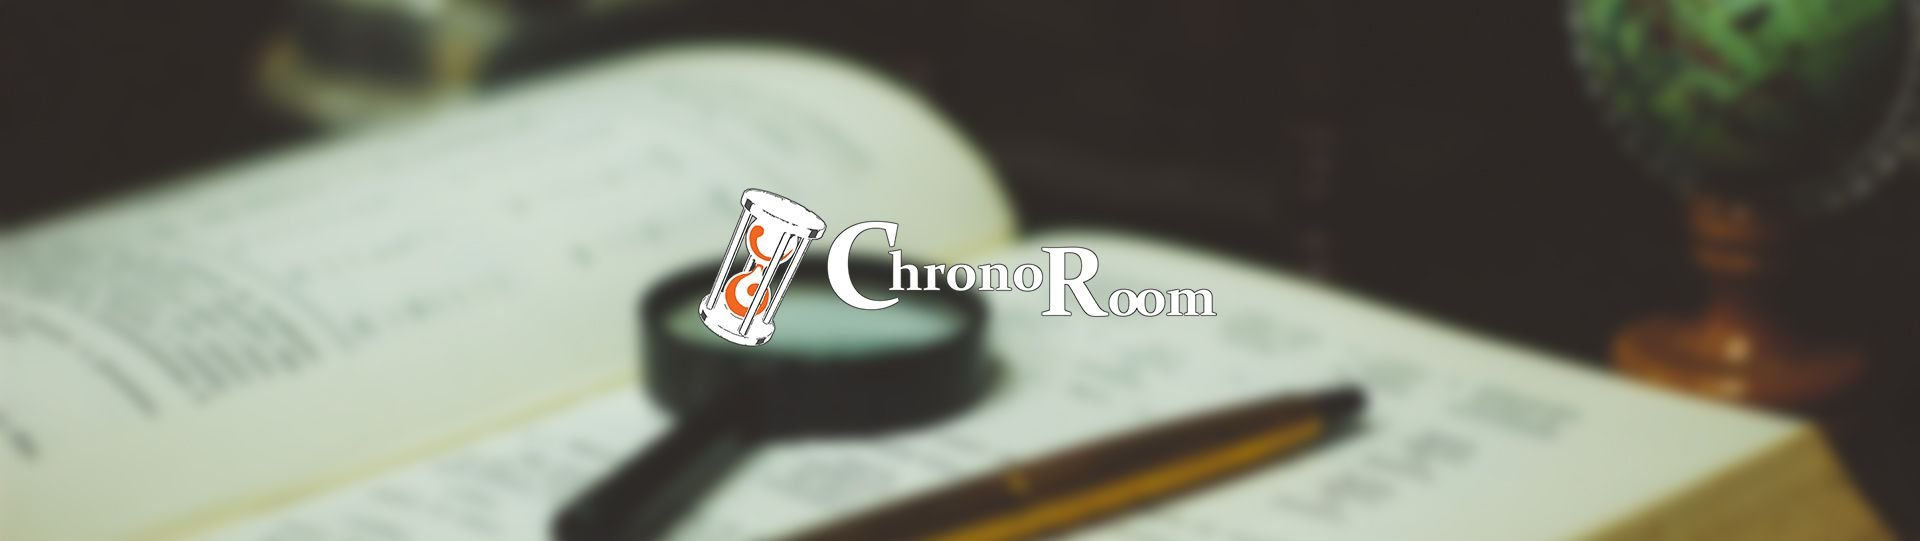 escape game chrono room.jpg